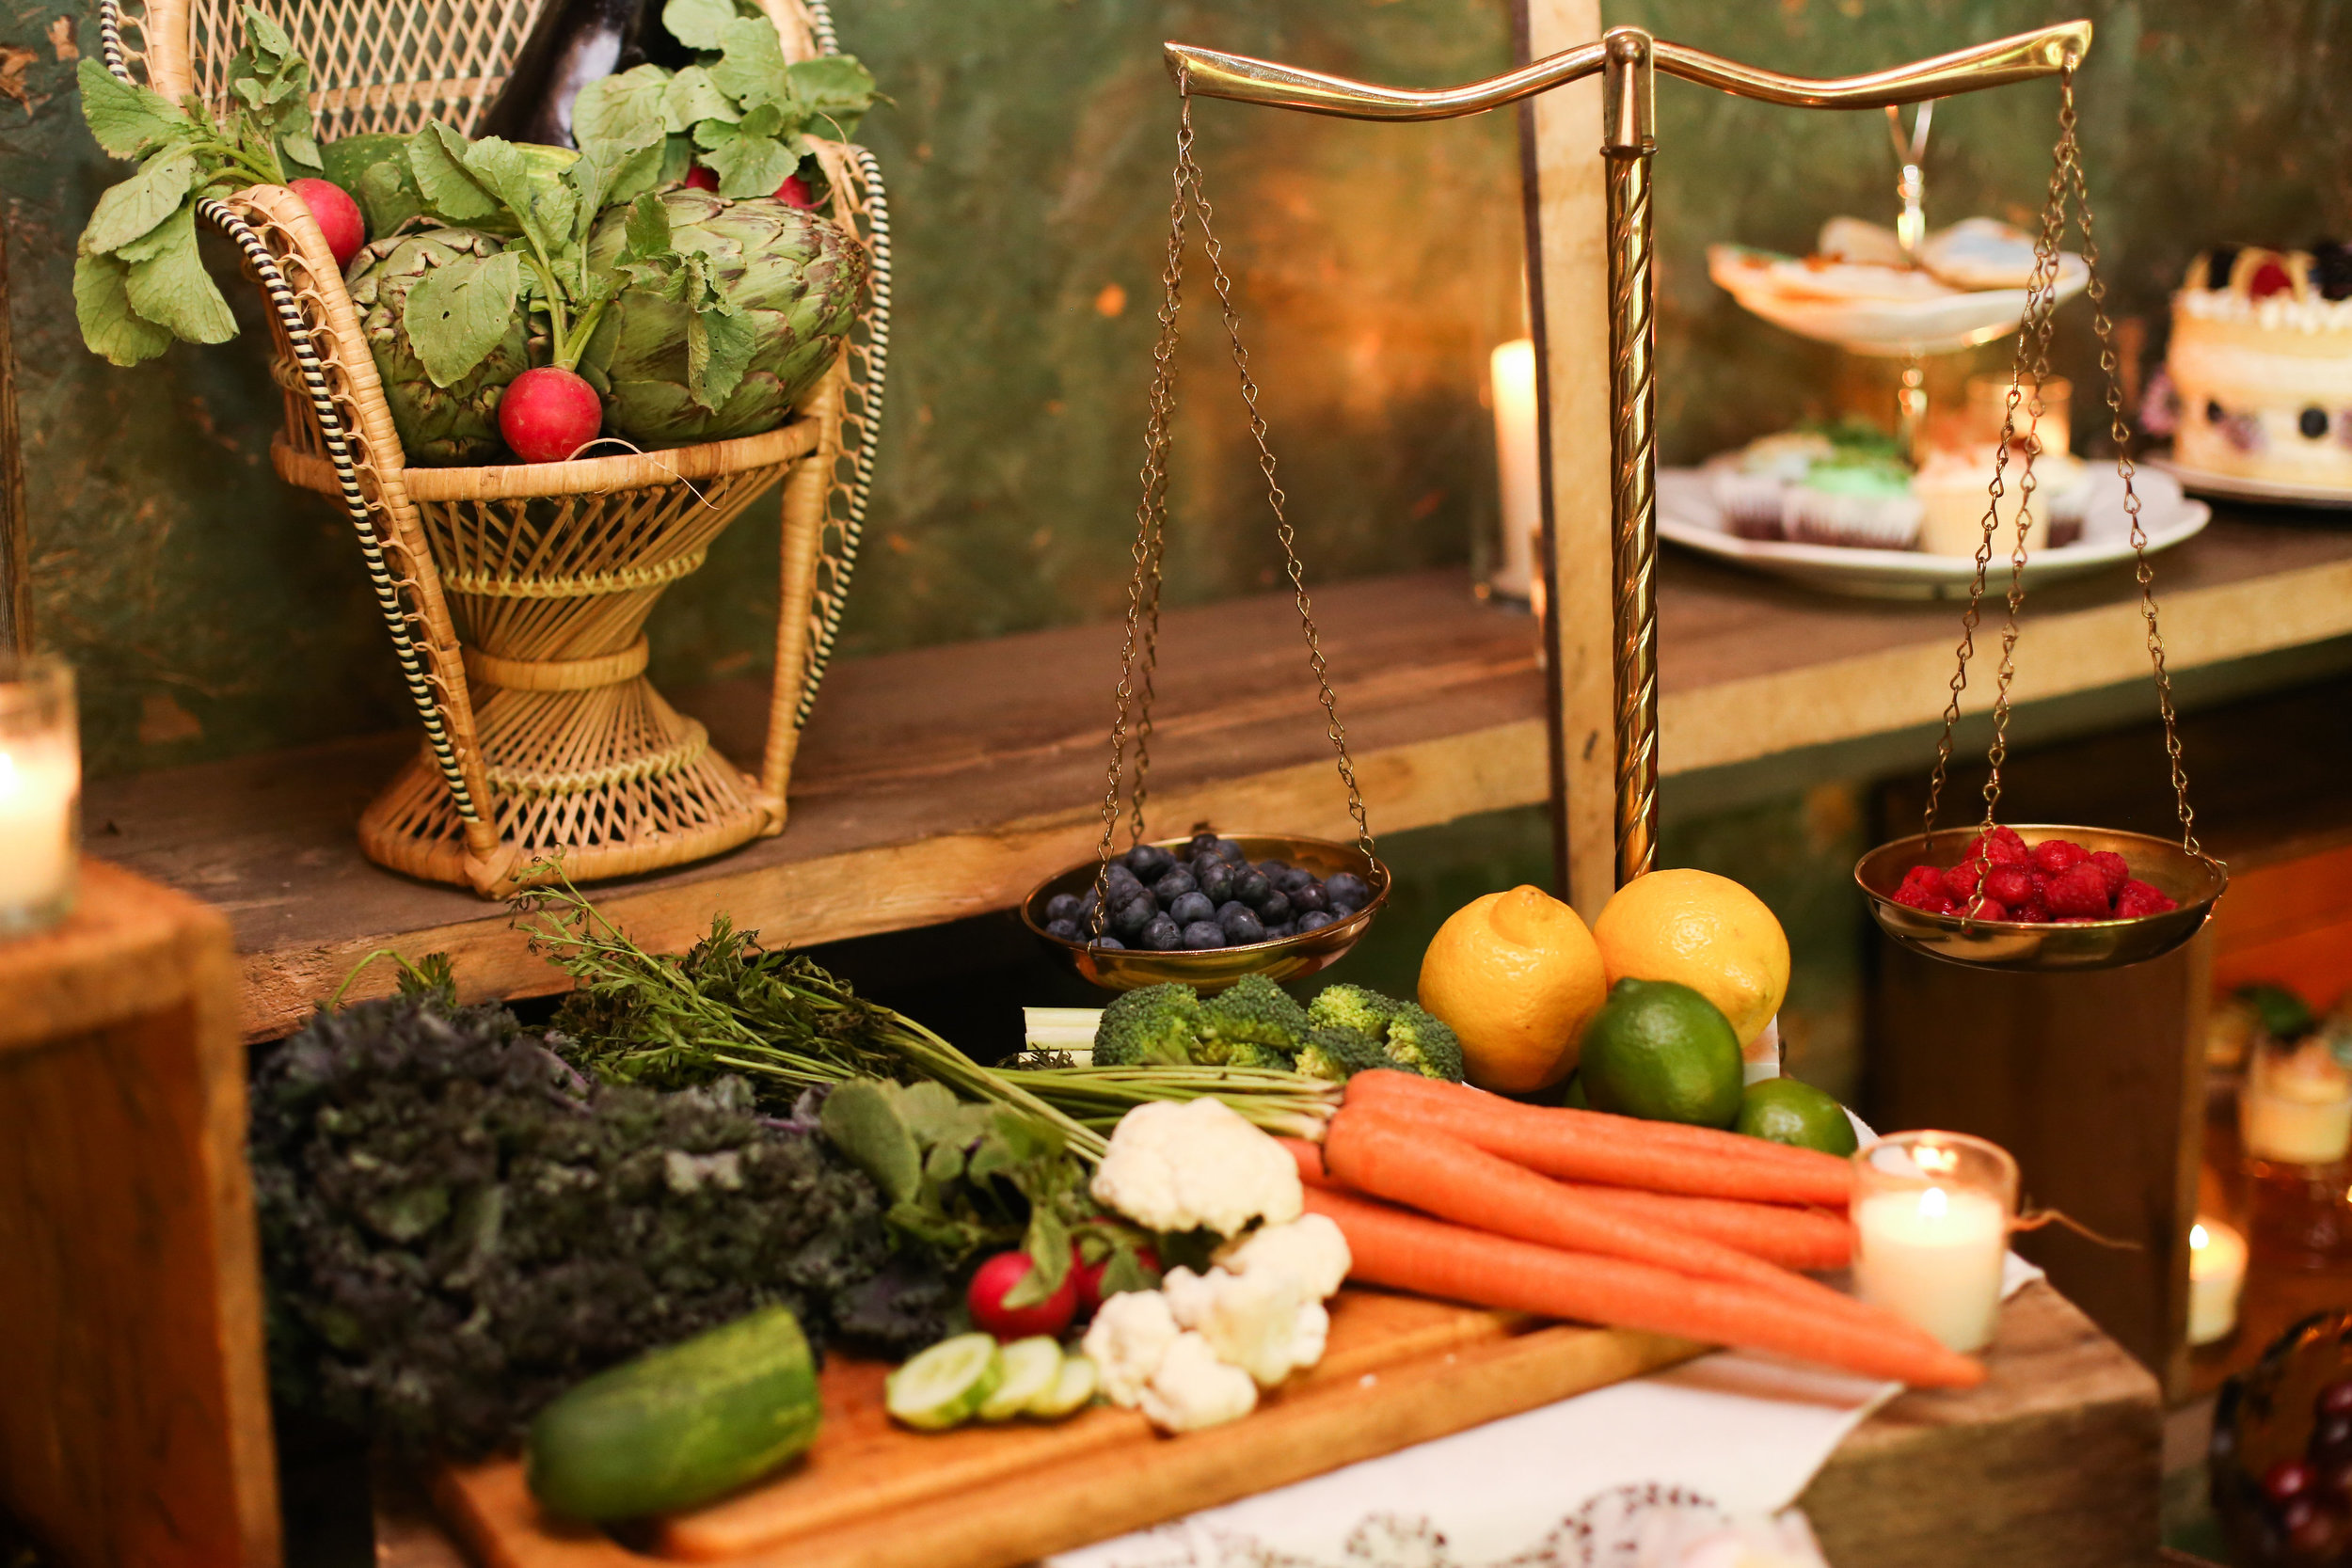 Food Spread styled by Forget Me Not Vintage Rentals, Photography by Seneca